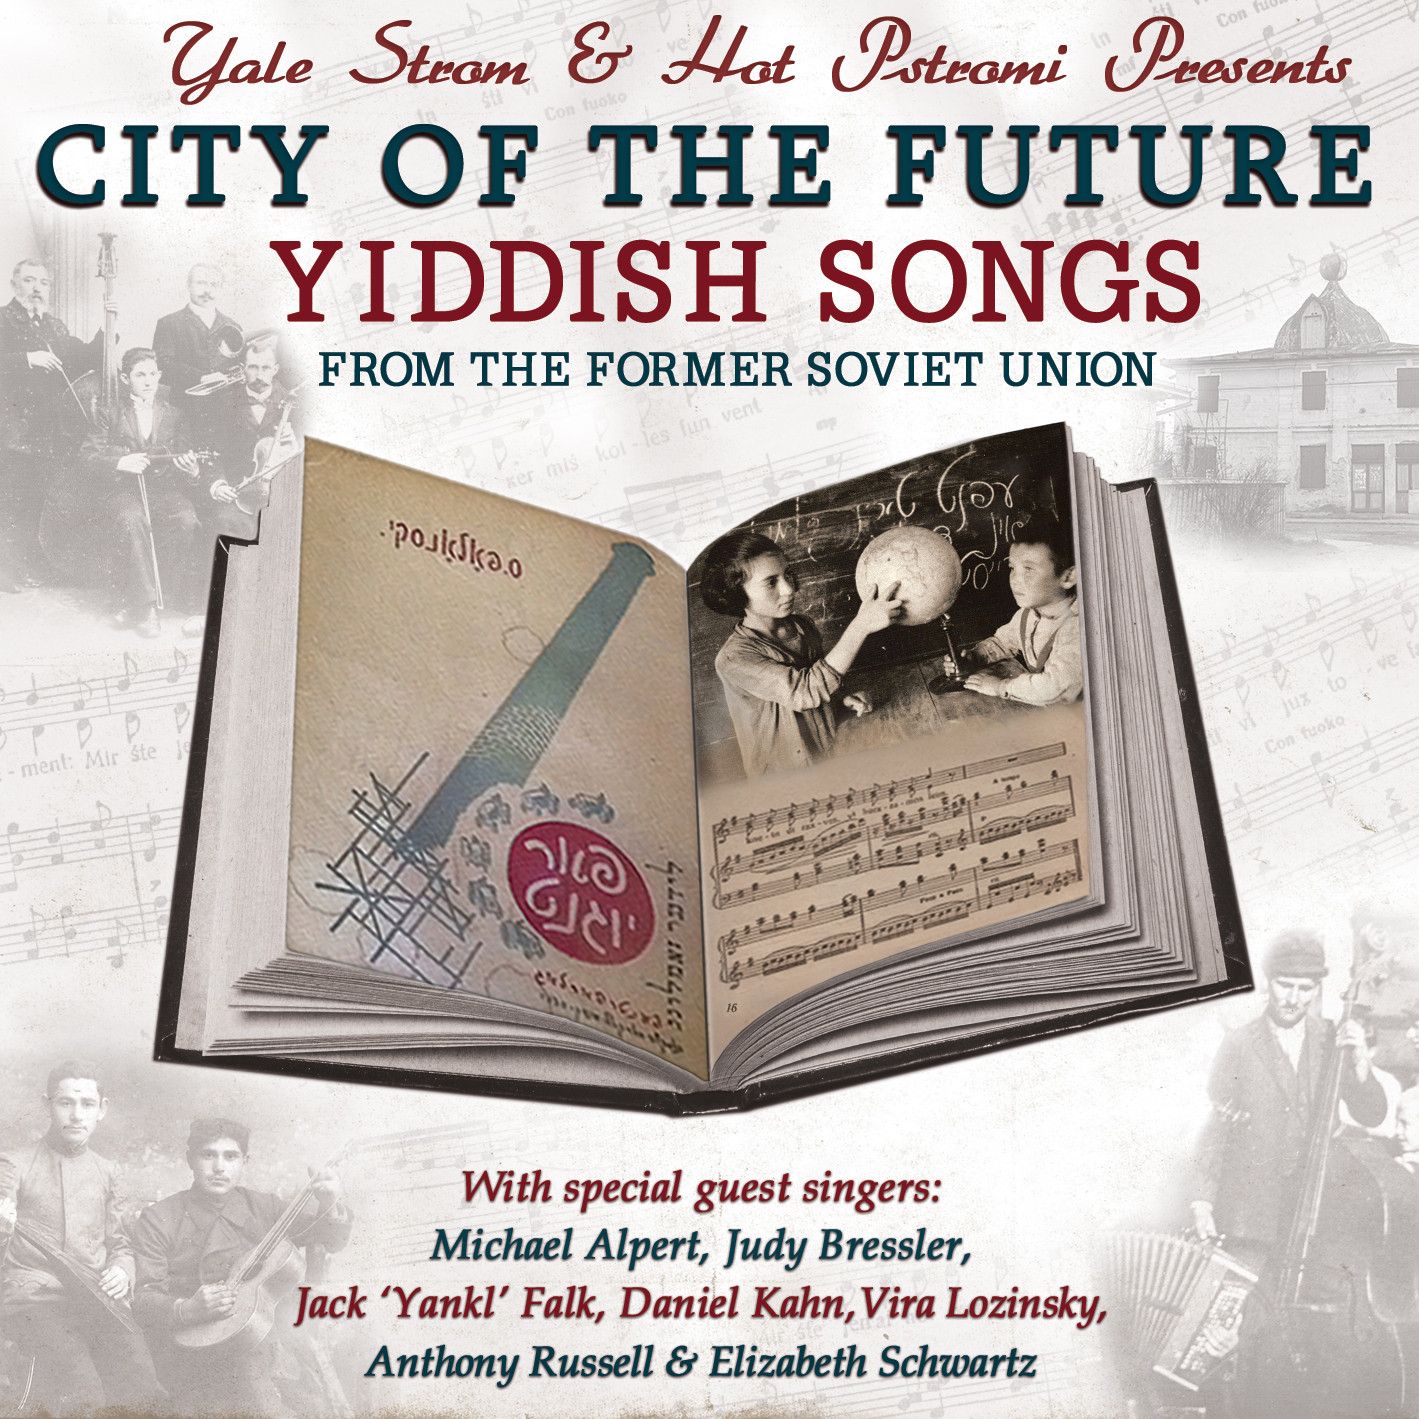 EUCD2617 City of the Future - Yiddish Songs from the Former Soviet Union